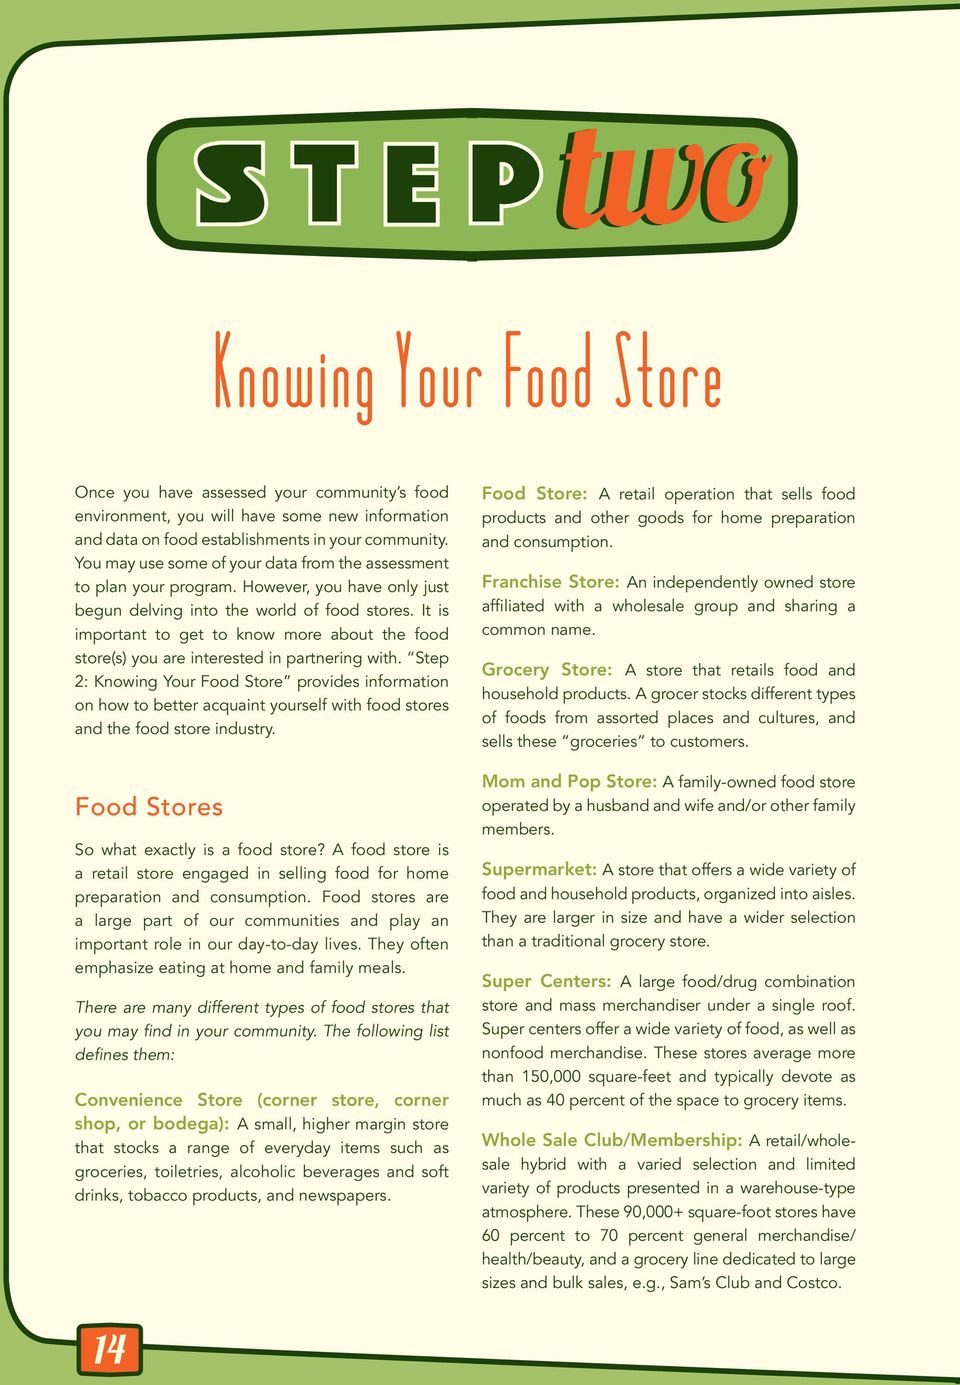 It is important to get to know more about the food store(s) you are interested in partnering with.